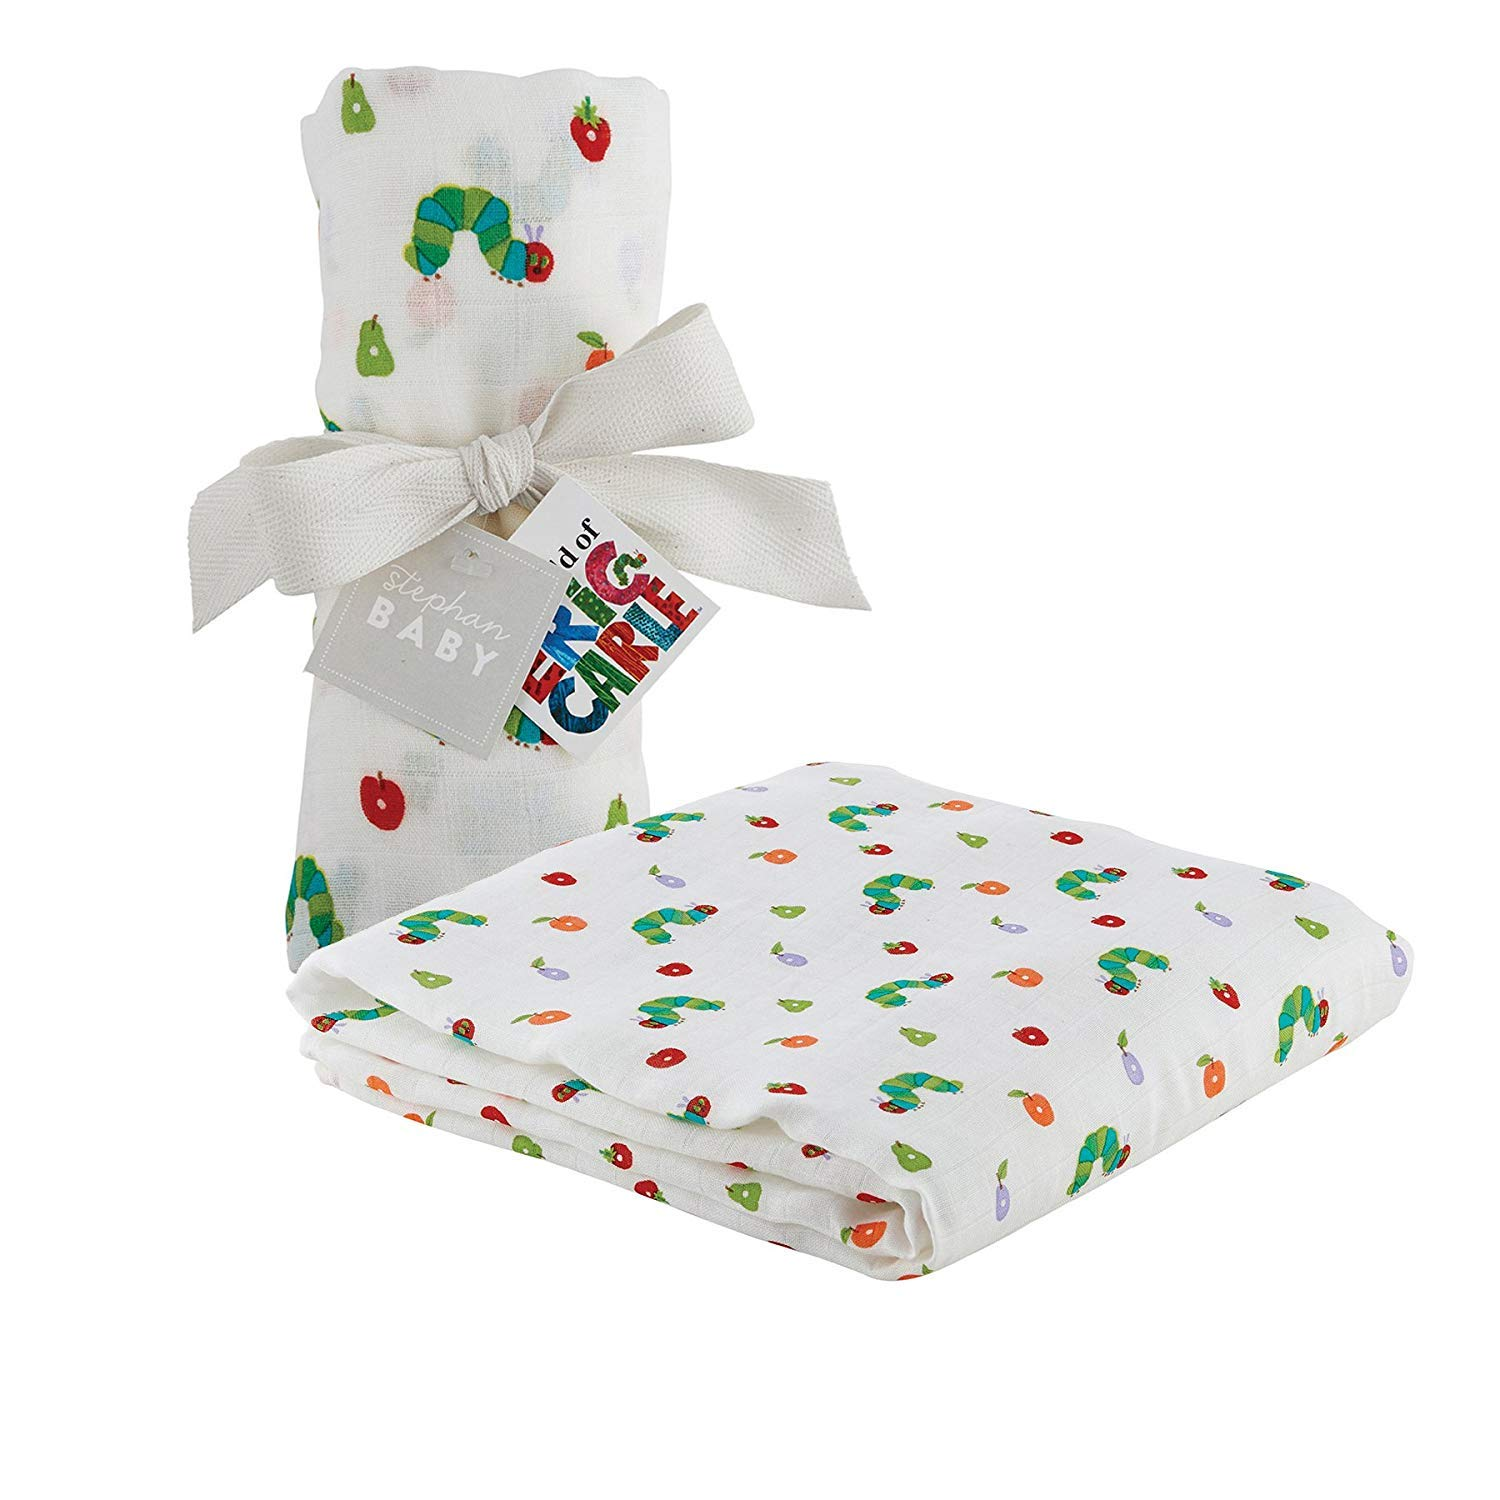 Stephan Baby Eric Carle The Very Hungry Caterpillar Viscose Cotton Muslin Swaddle Blanket